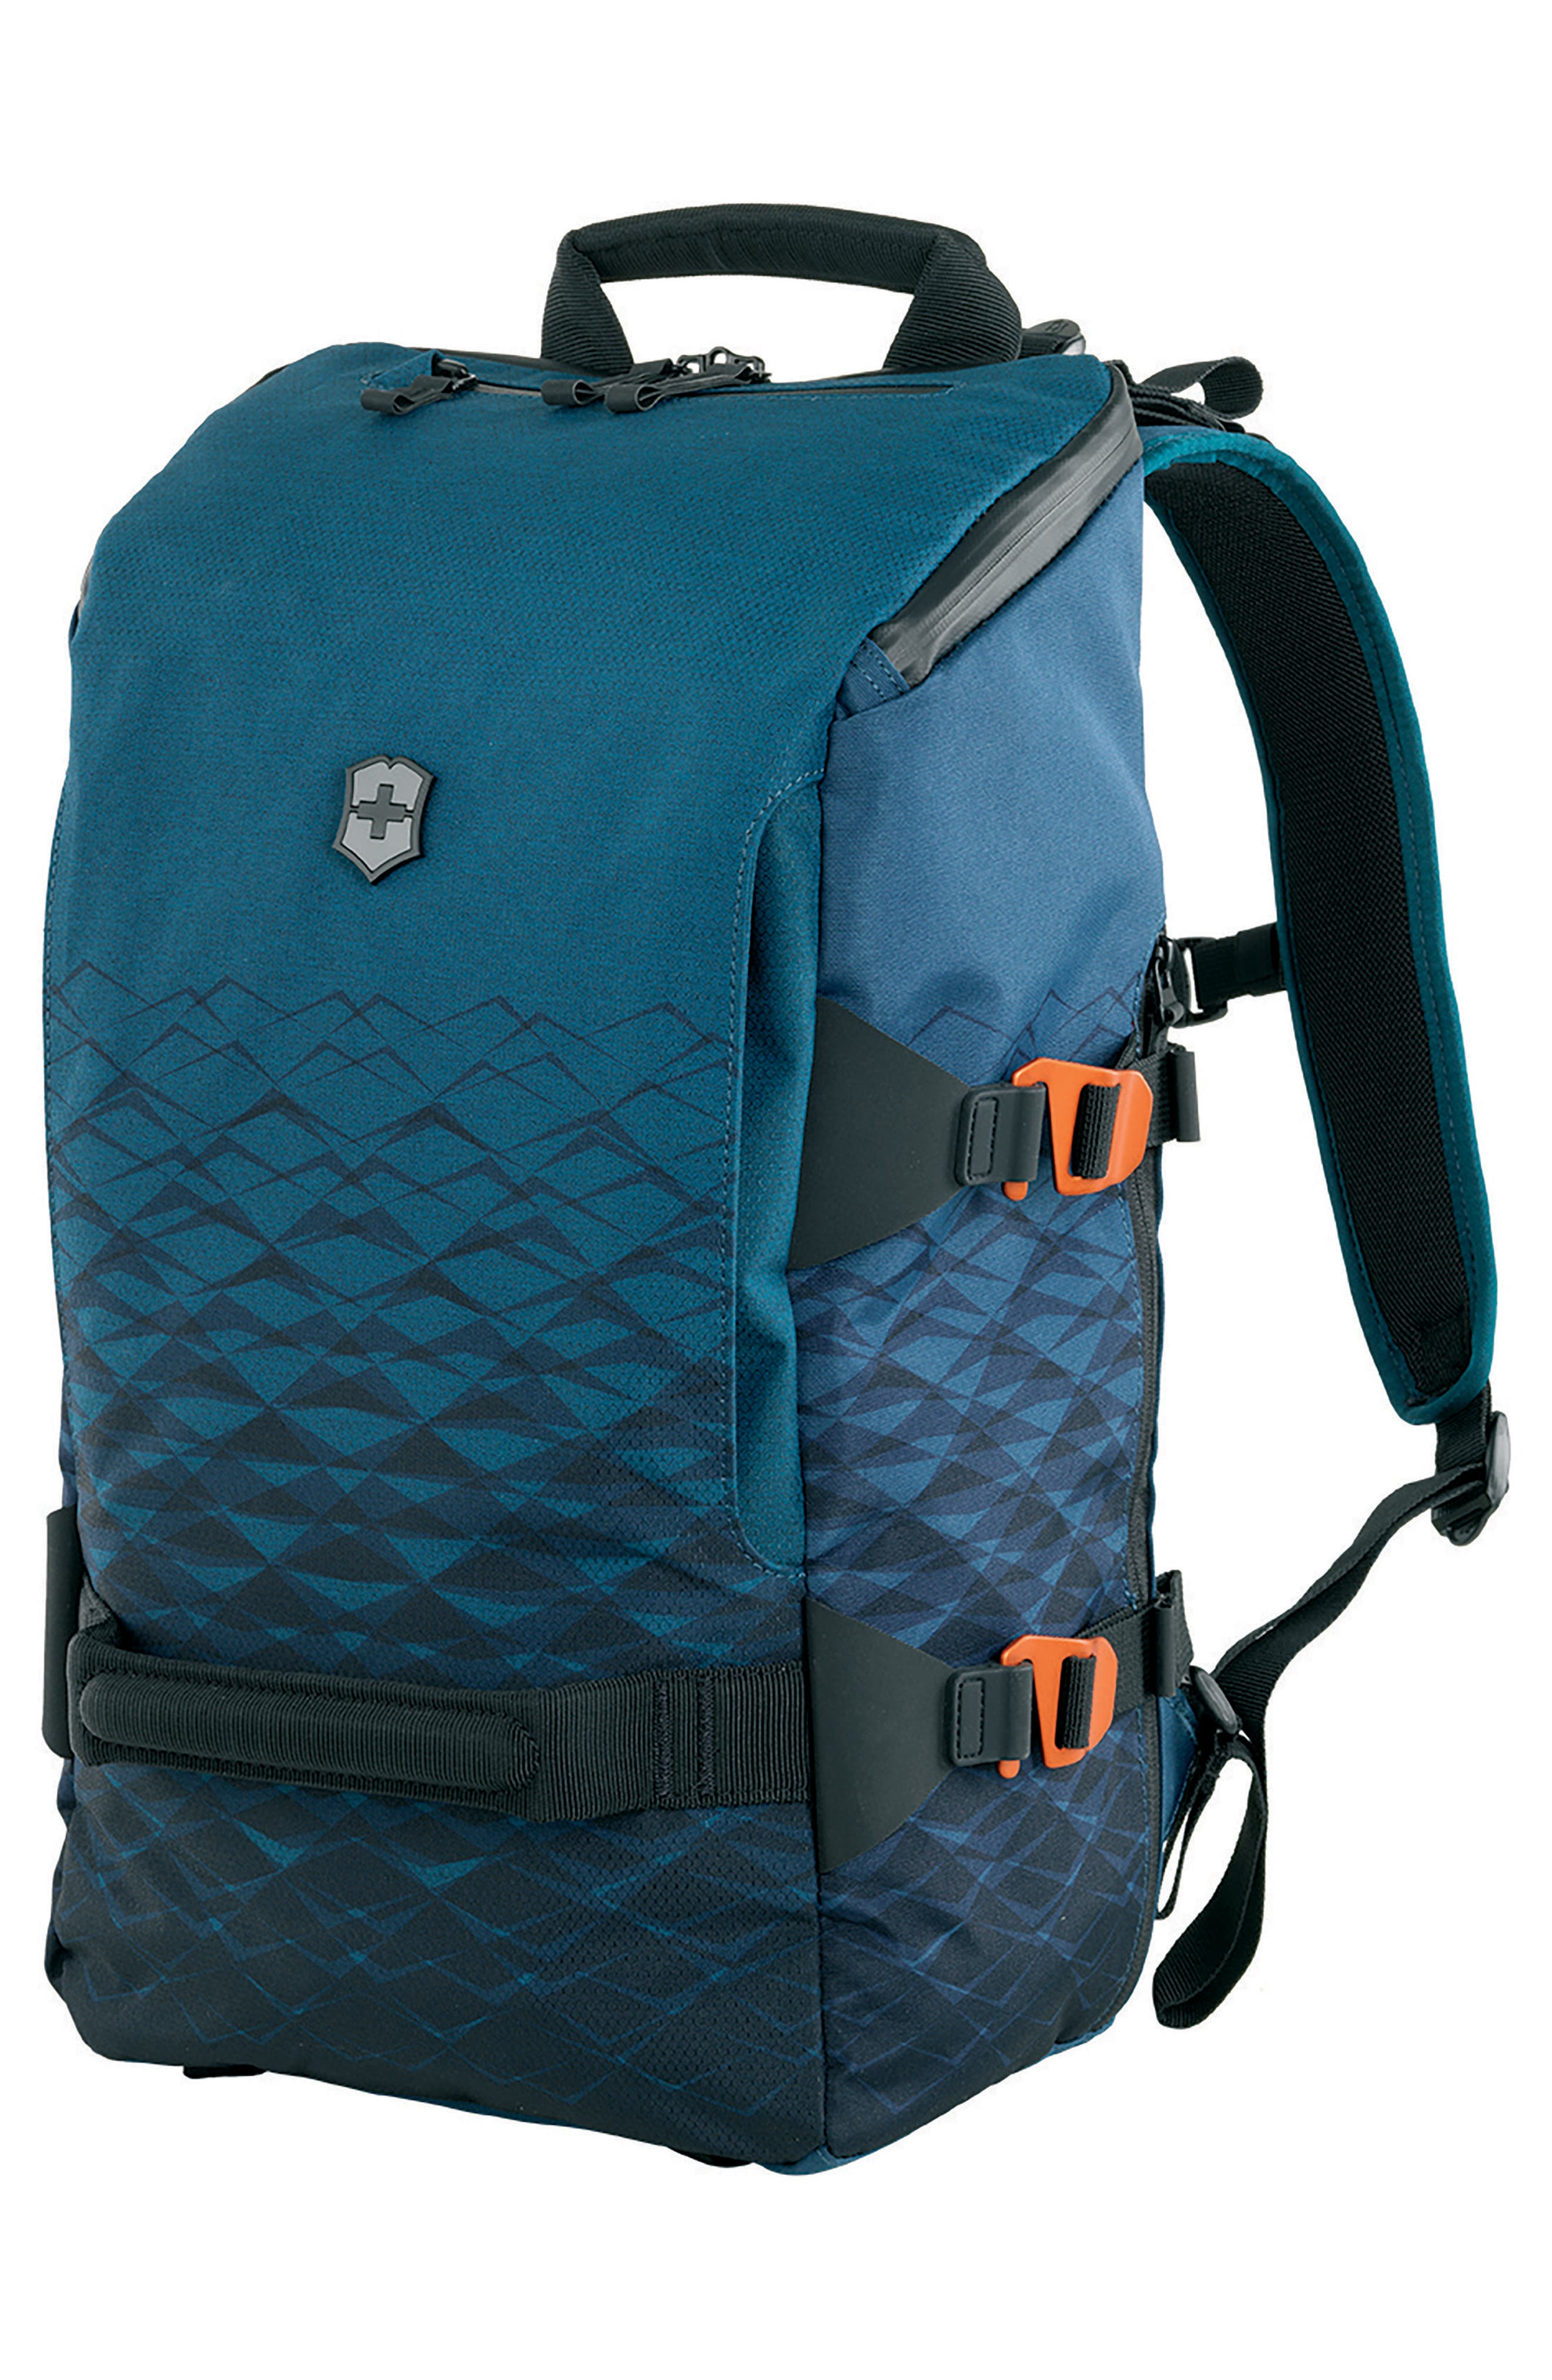 VX Touring Backpack,                             Alternate thumbnail 3, color,                             Dark Teal